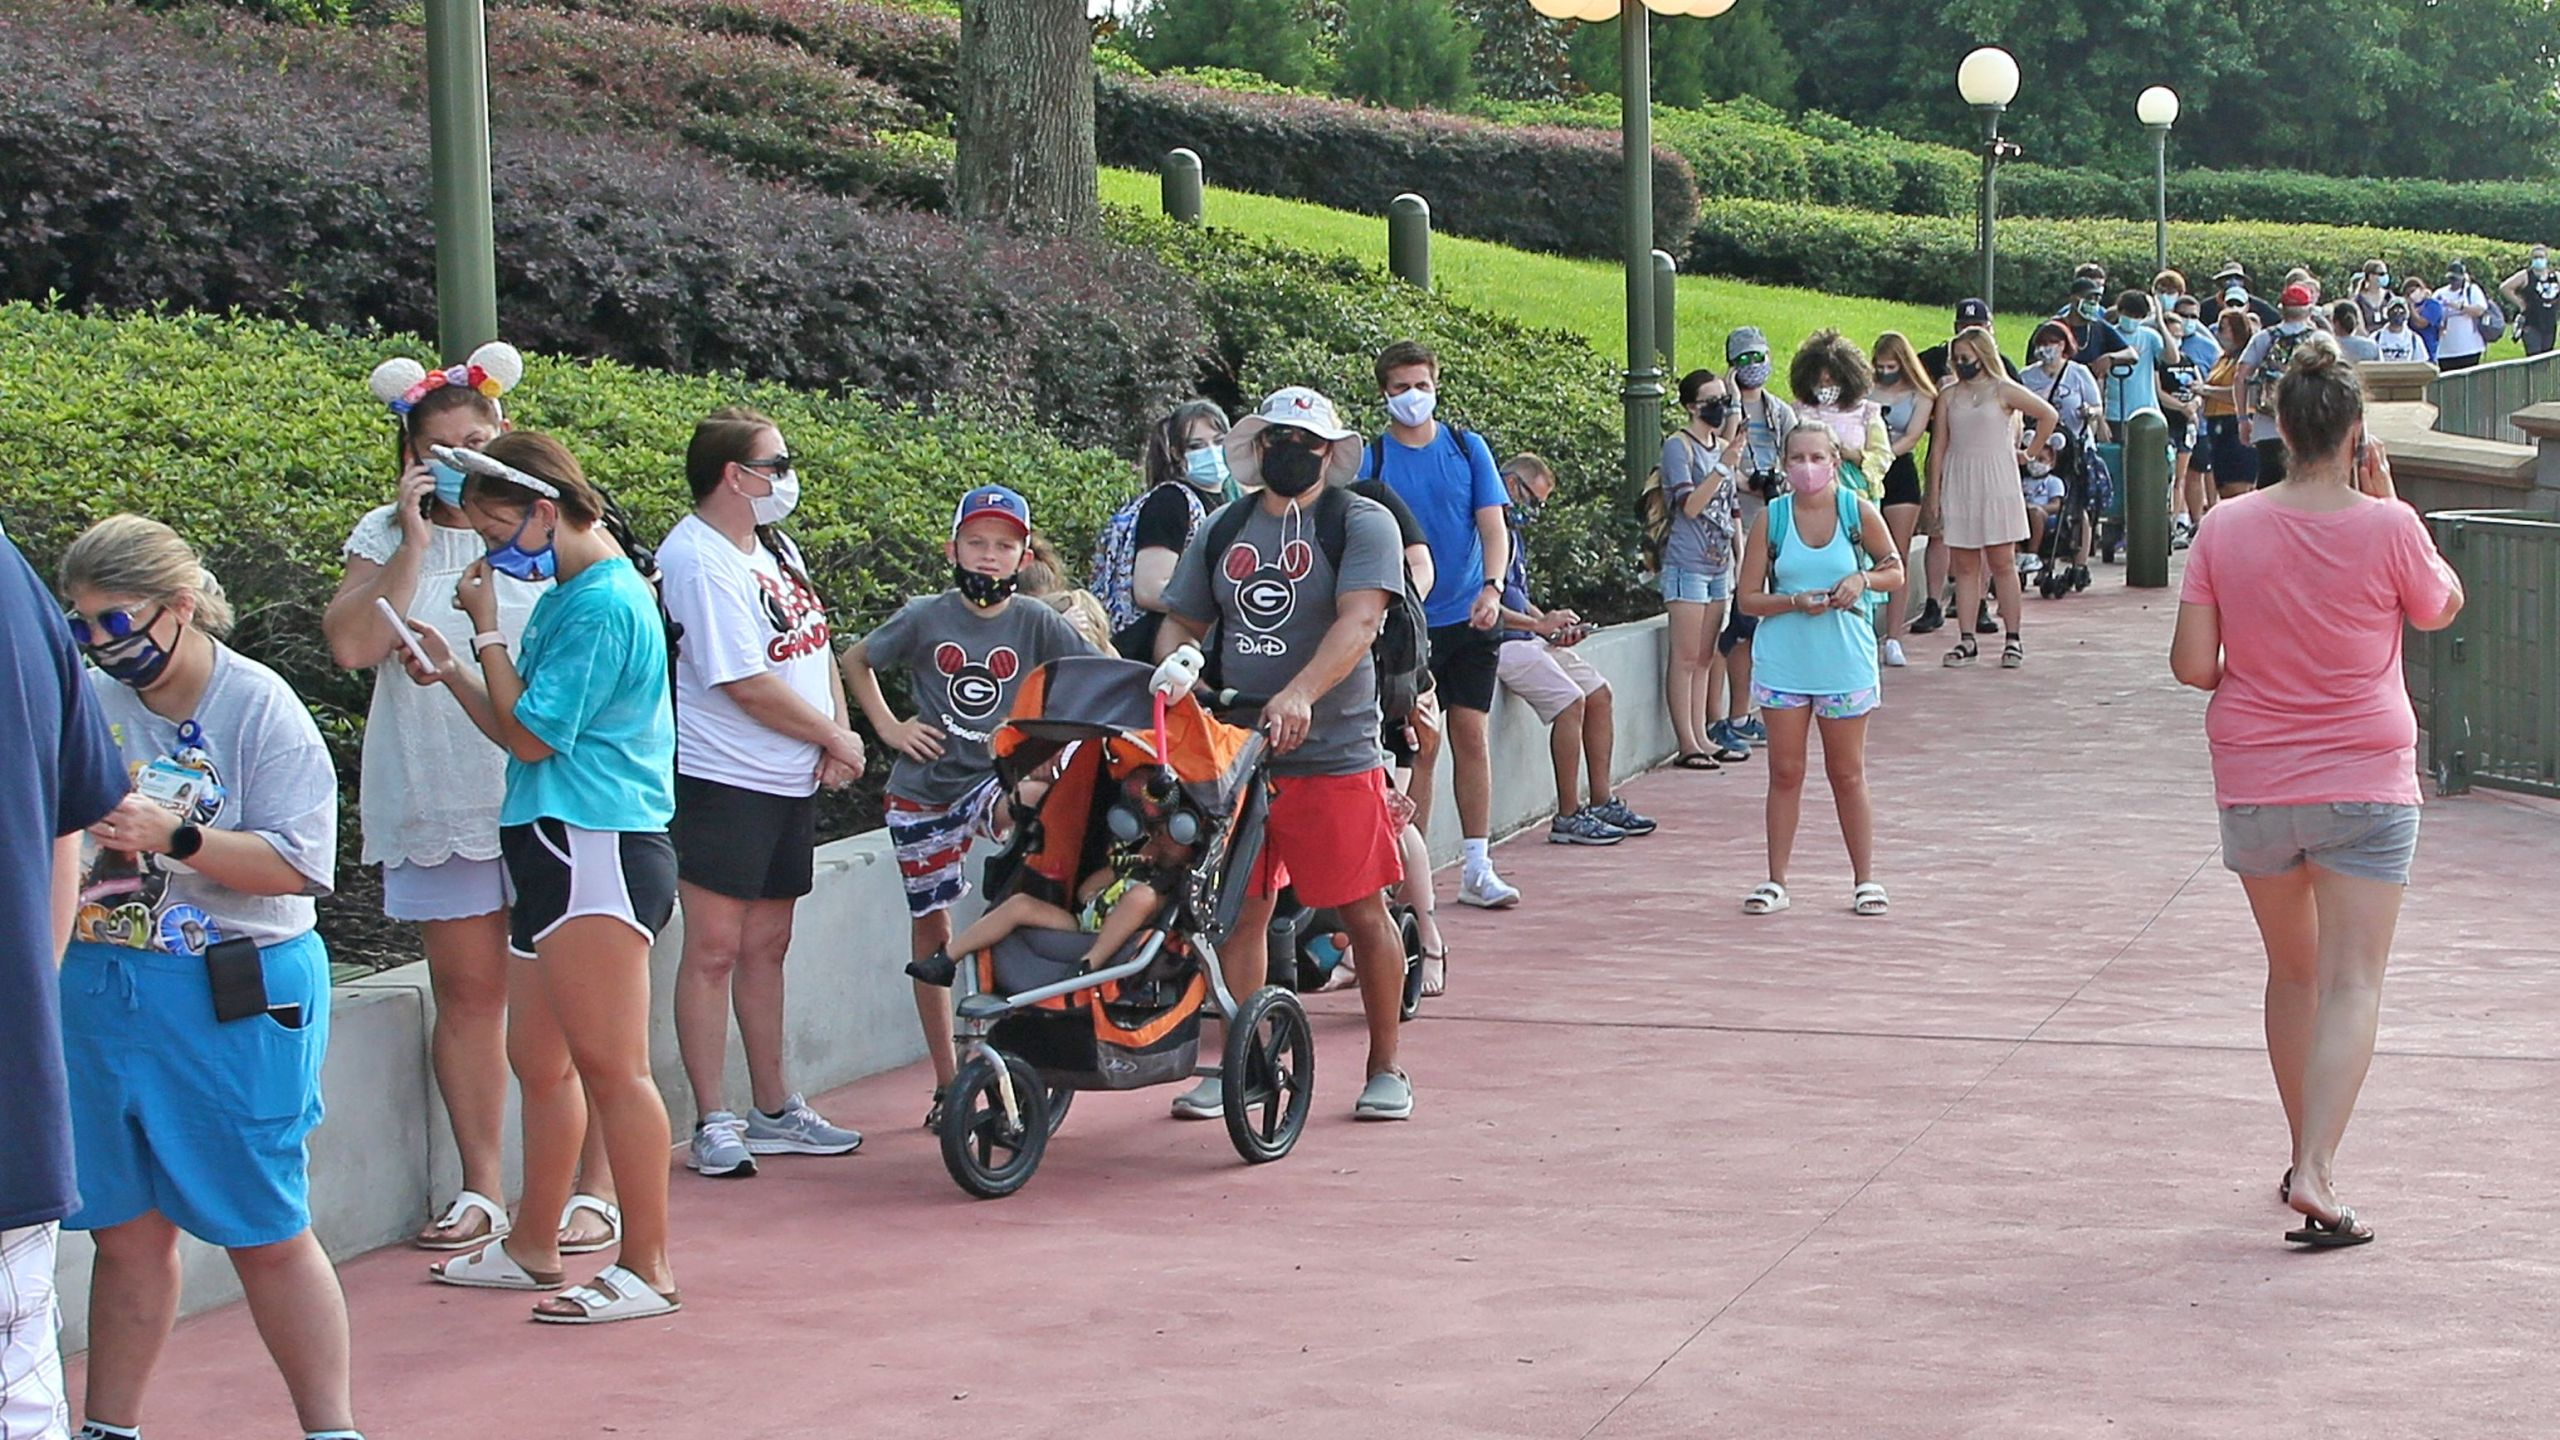 Guests wearing protective masks wait to pick up their tickets at the Magic Kingdom theme park at Walt Disney World on the first day of reopening, in Orlando, Florida, on July 11, 2020. (GREGG NEWTON/Gregg Newton/AFP via Getty Images)